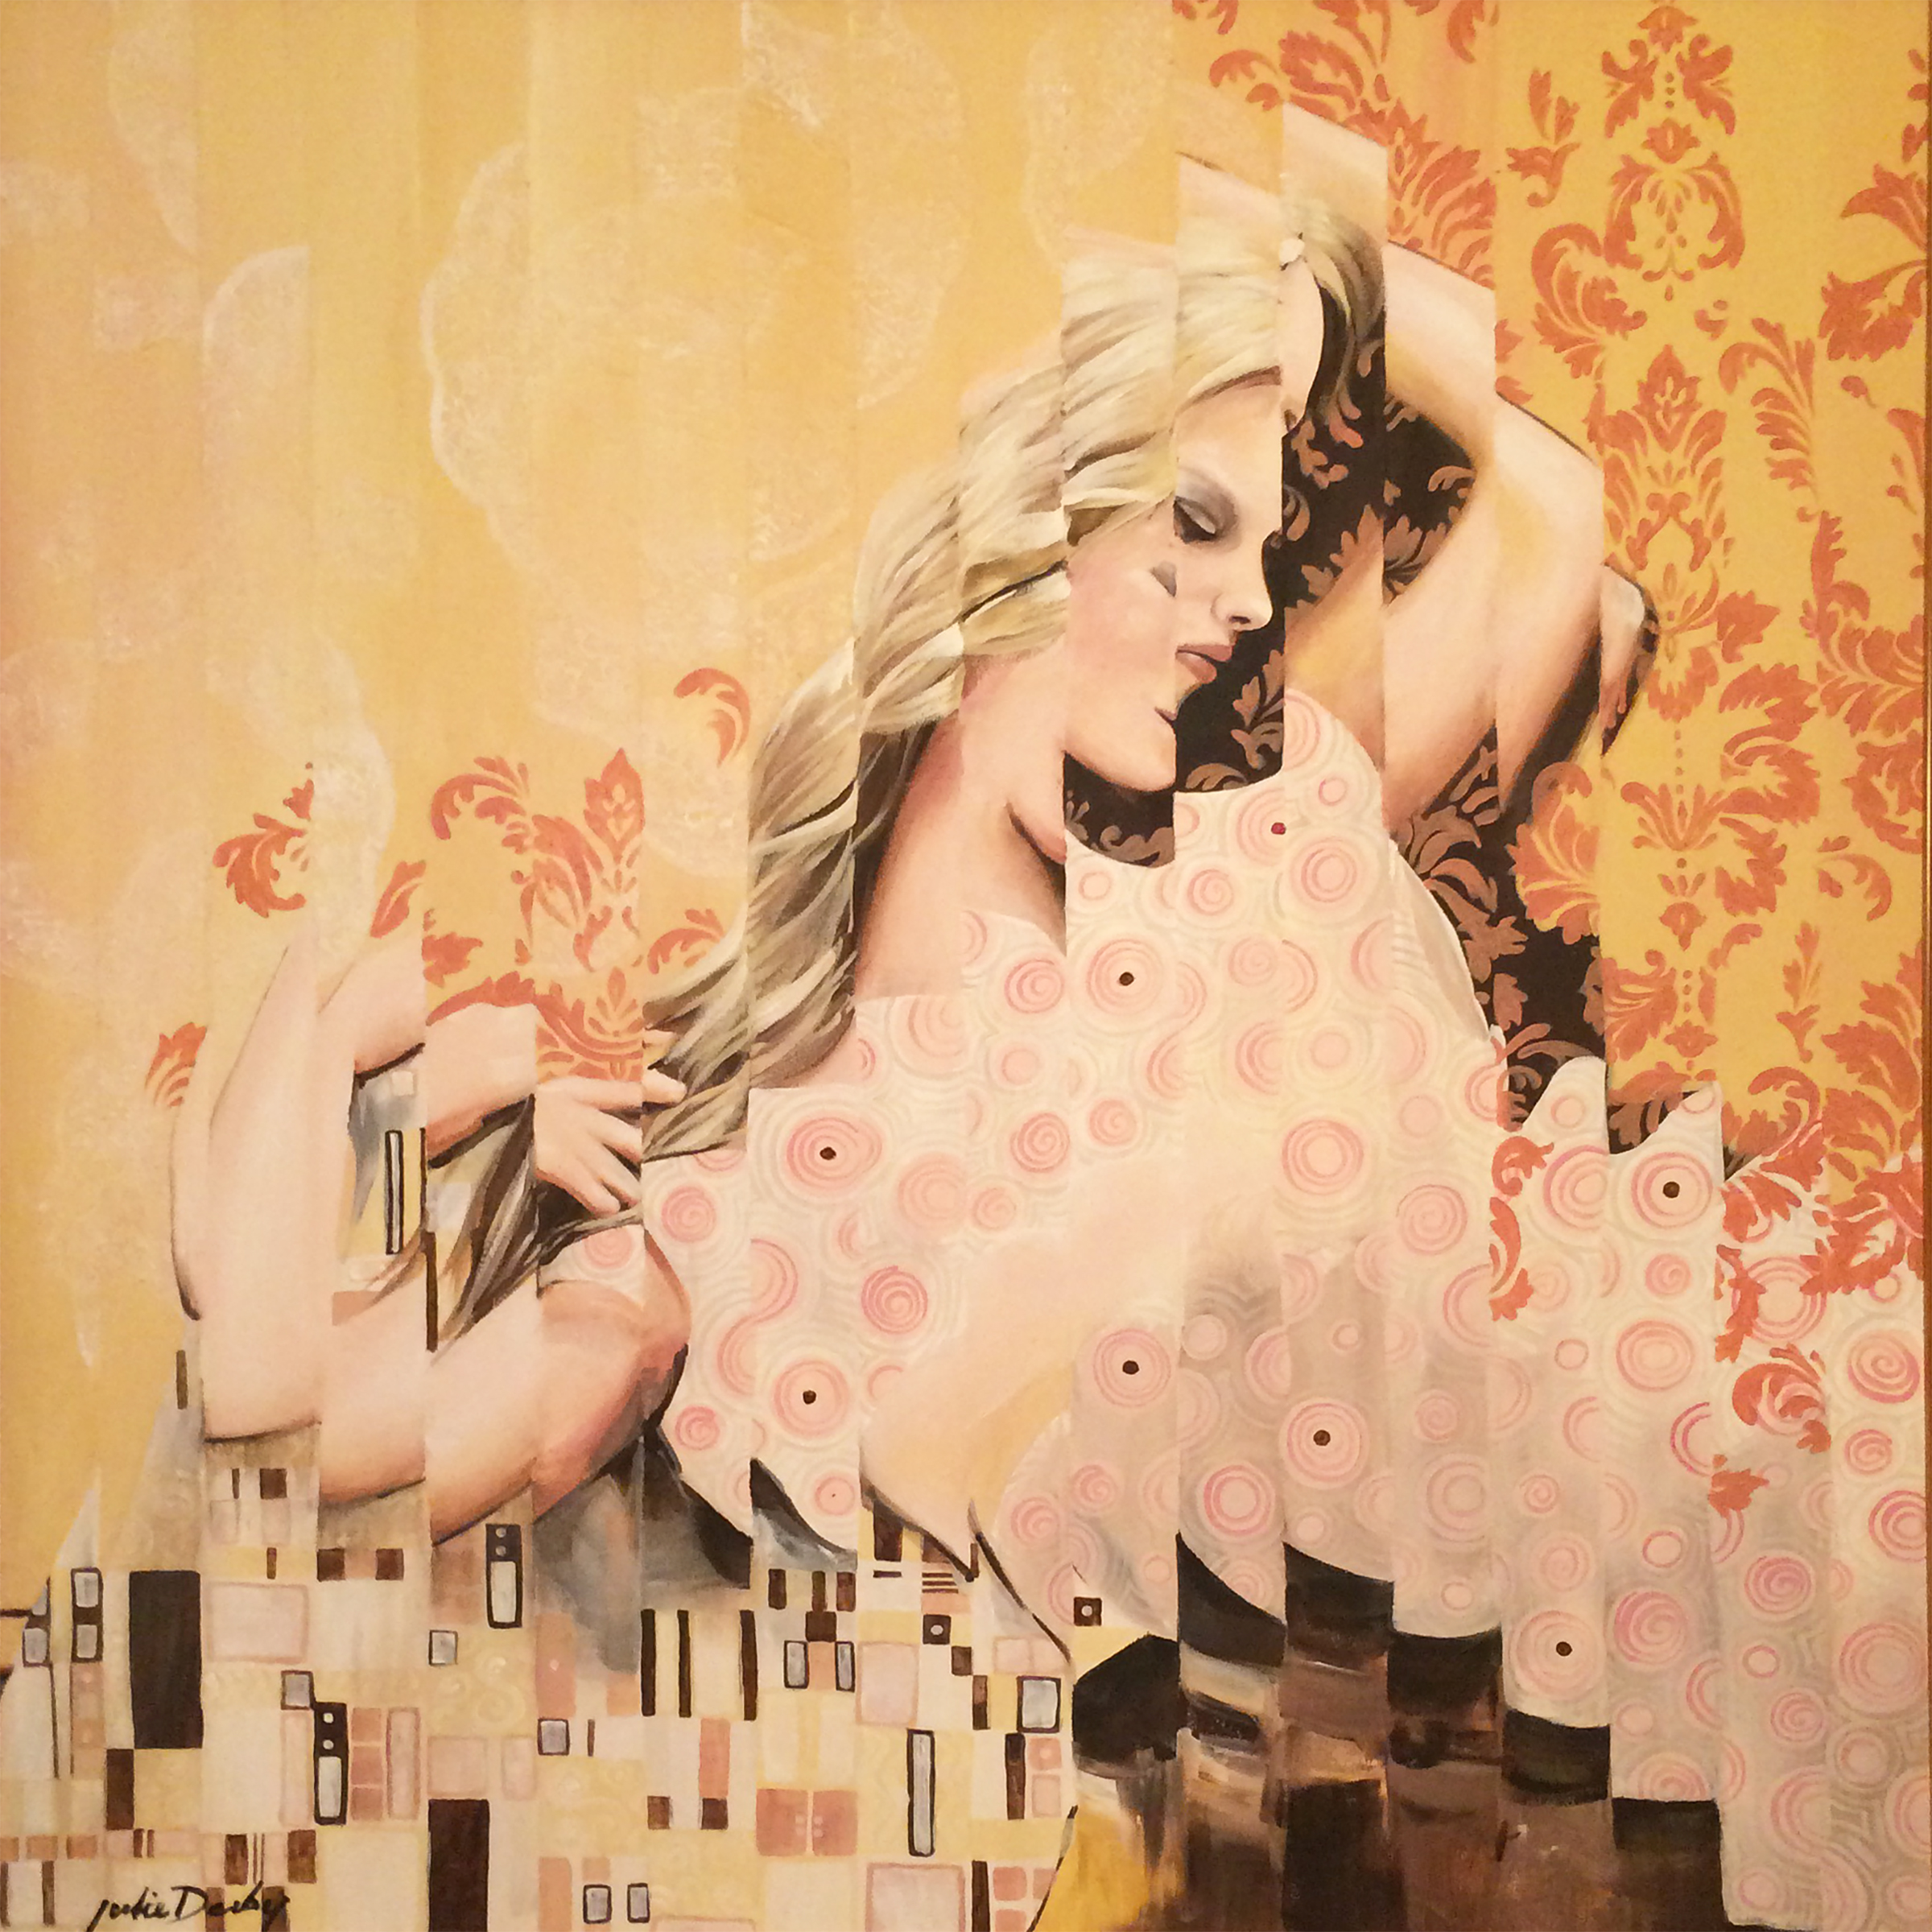 "Dreaming of Gustav • 40"" x 40"" x 1"" • Acrylic & Doilies on Canvas"